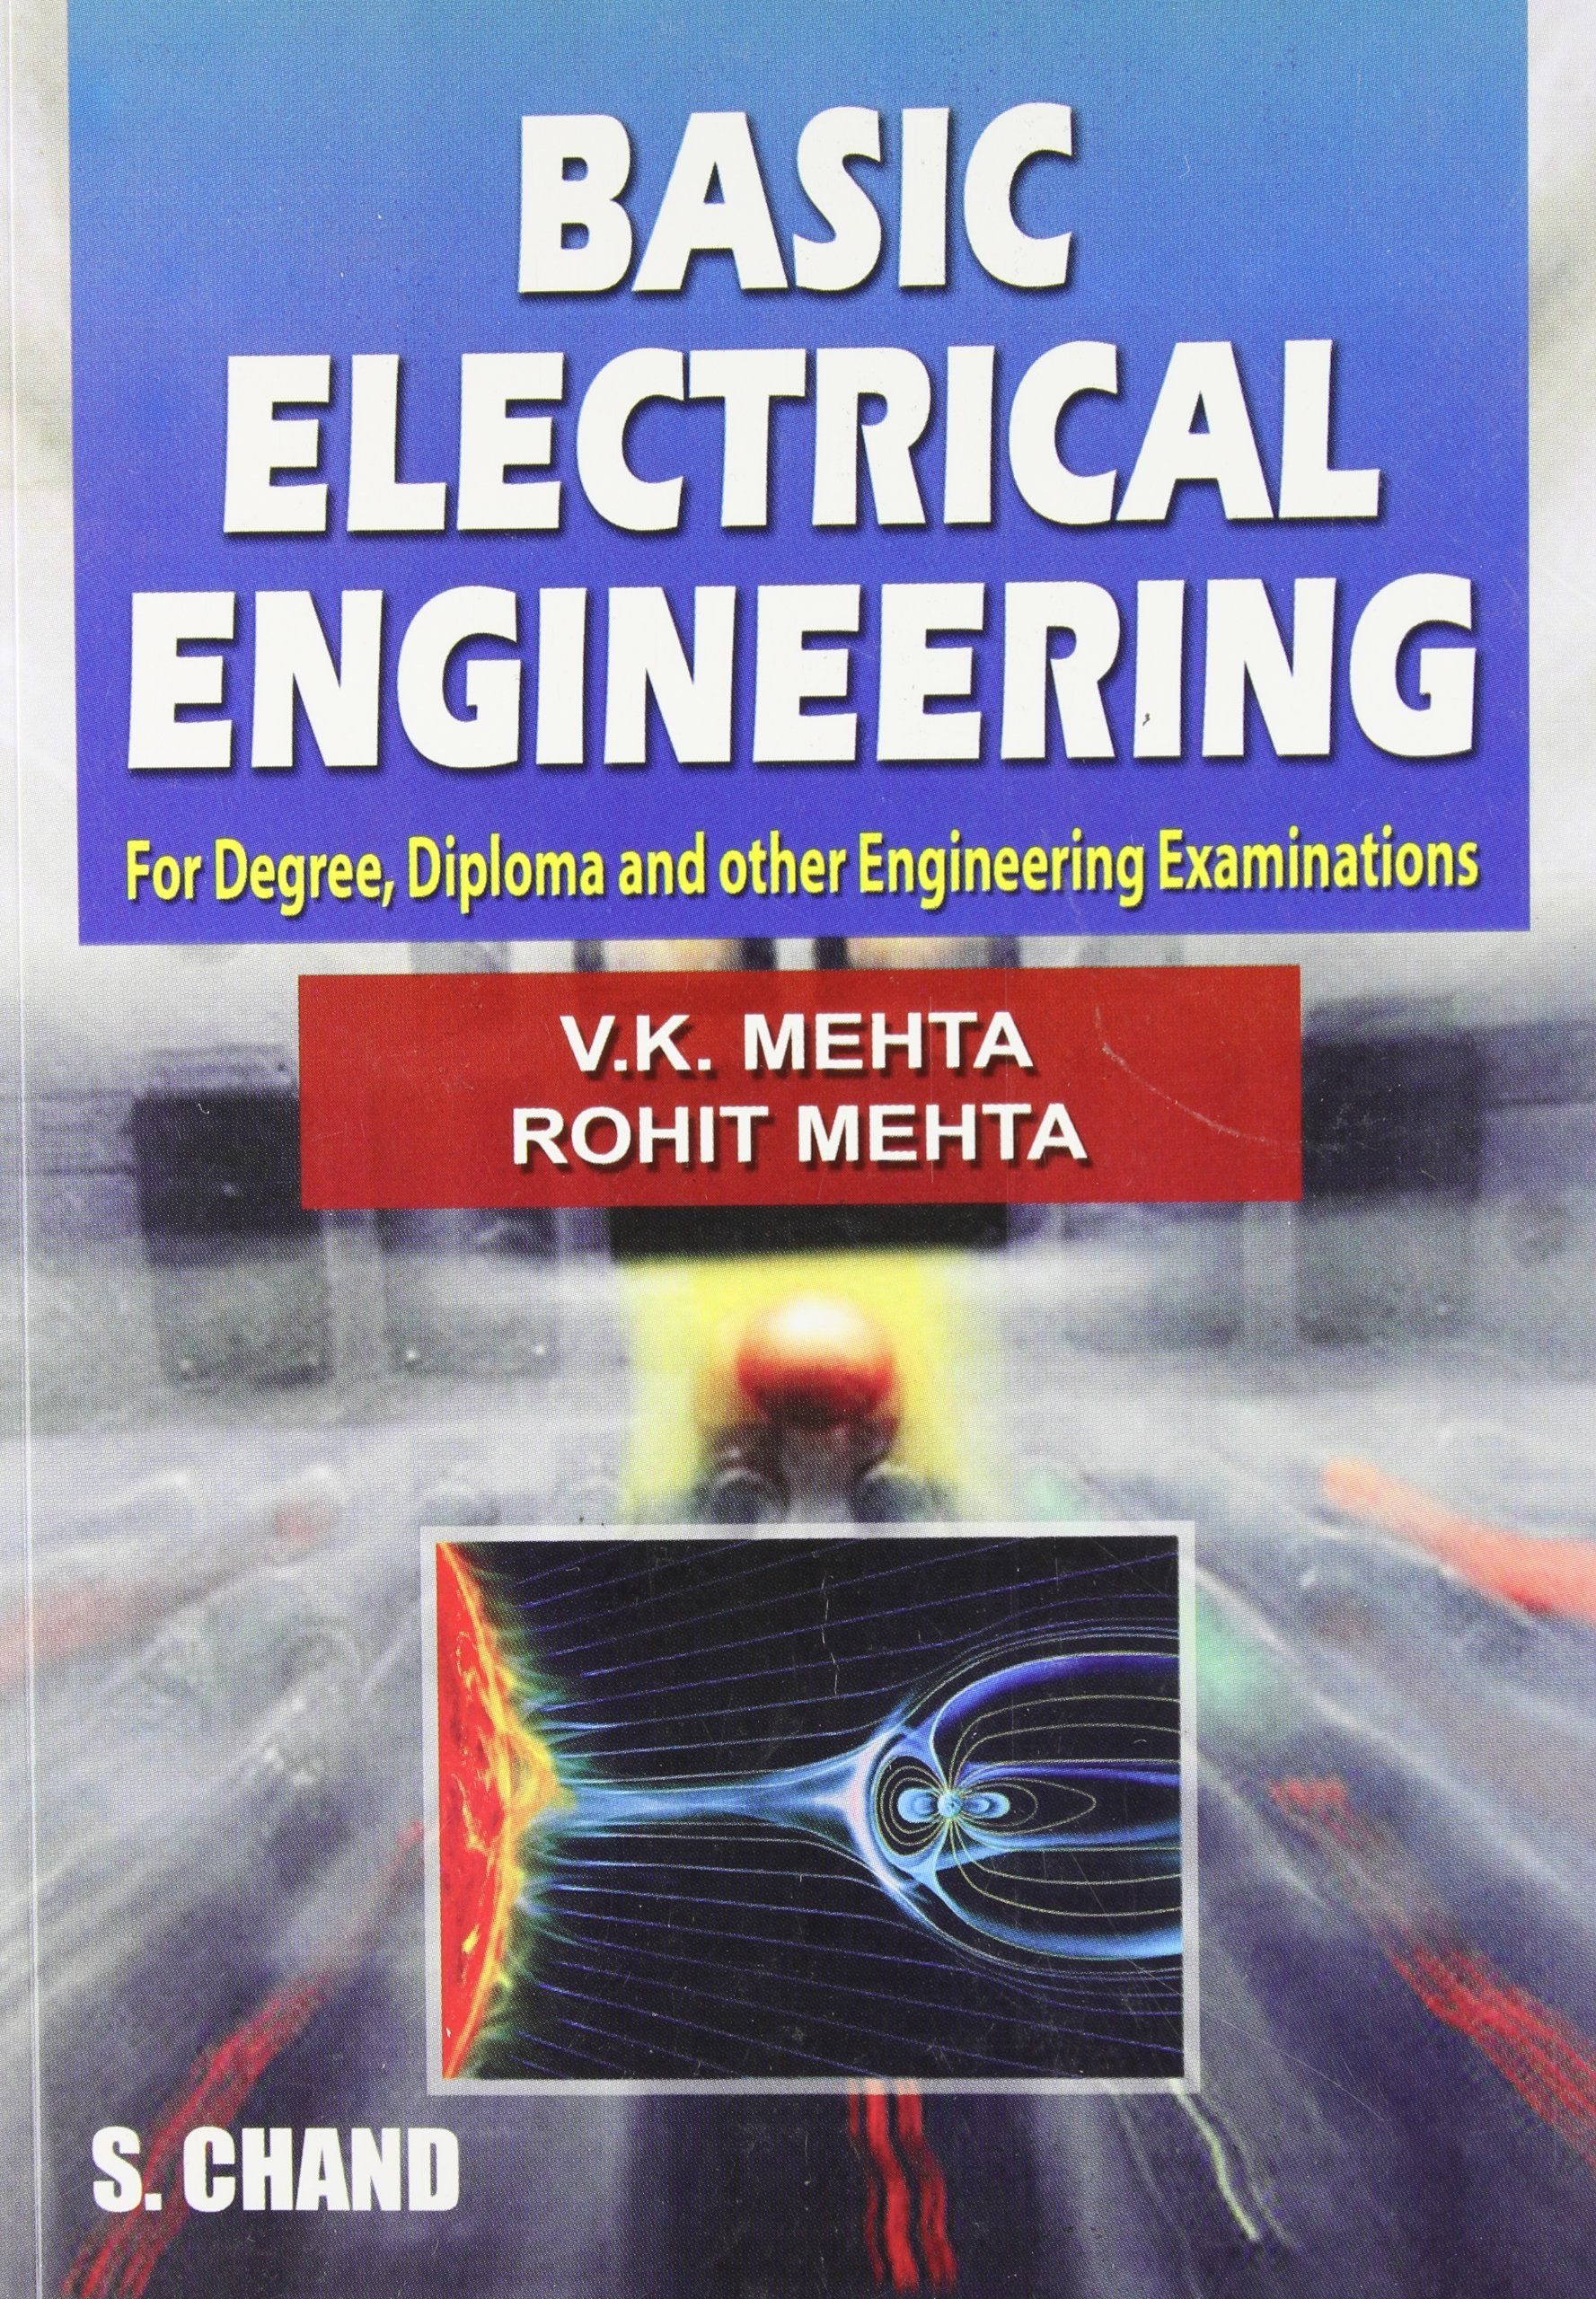 Basic Electrical Engineering By V K Metha Price Rs 200 Free Delivery Basic Electrical Engineering Electrical Engineering Engineering